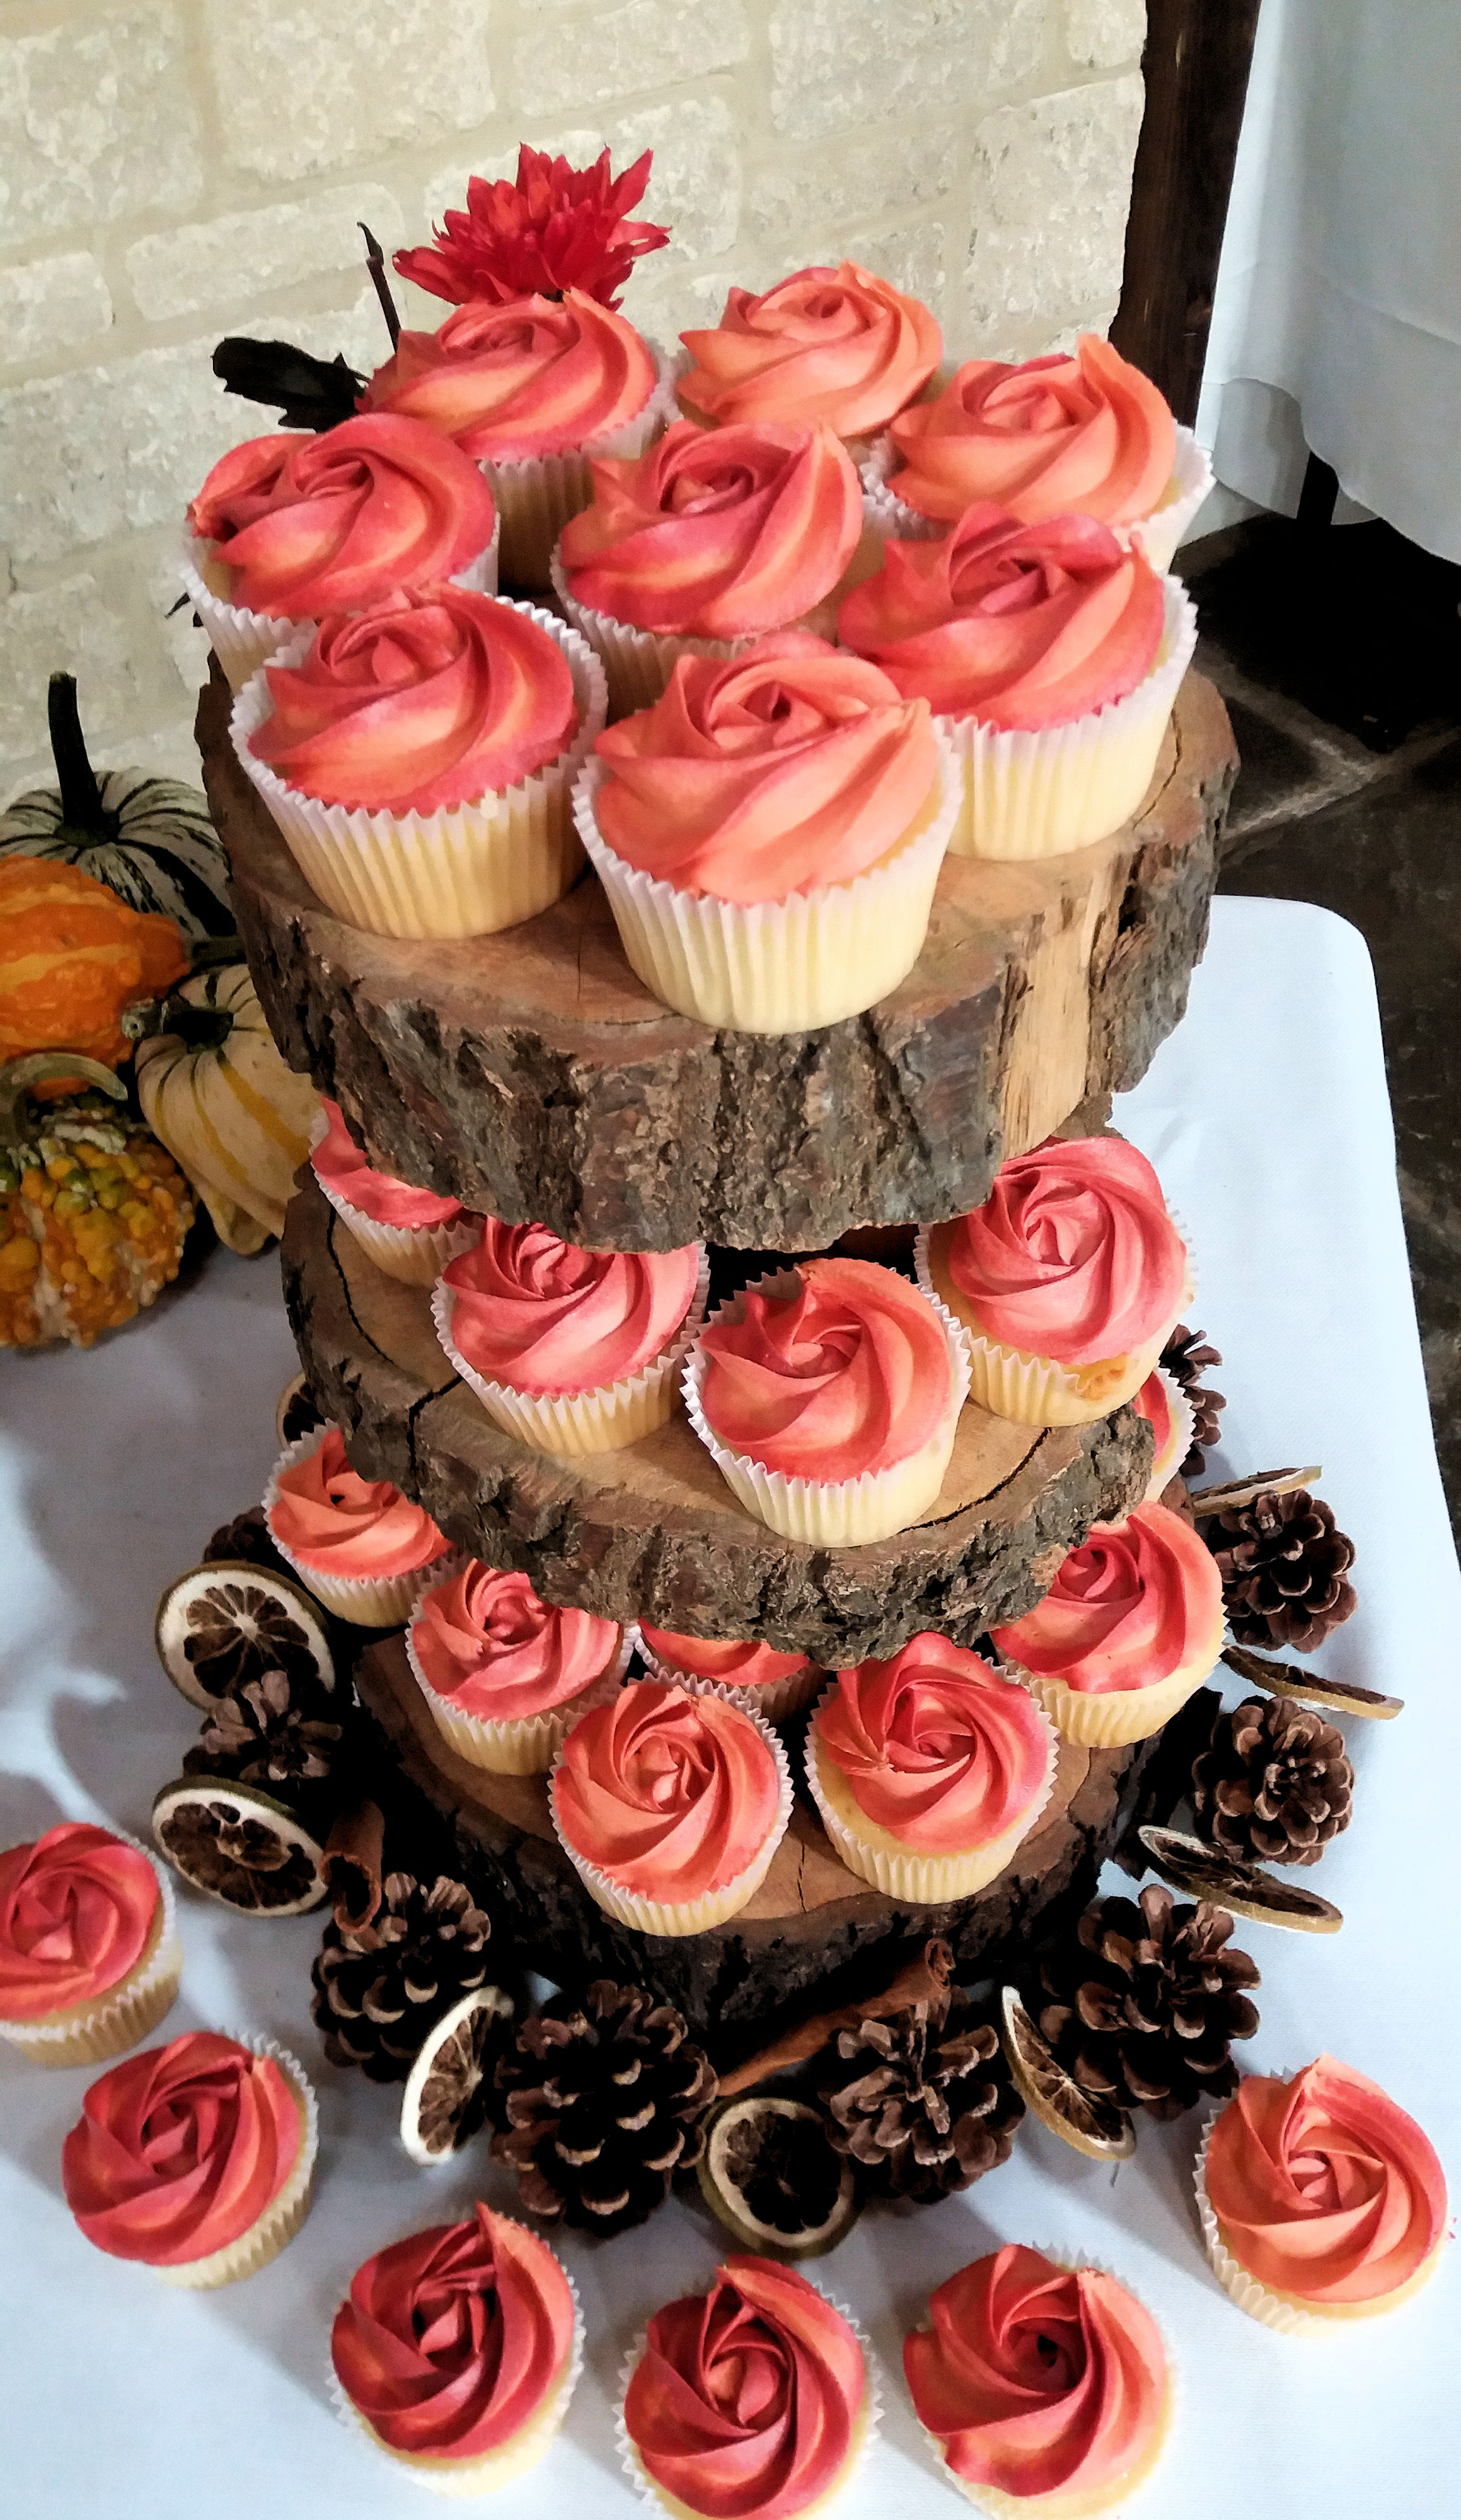 Ombre Rose Wedding Cupcakes2.jpg